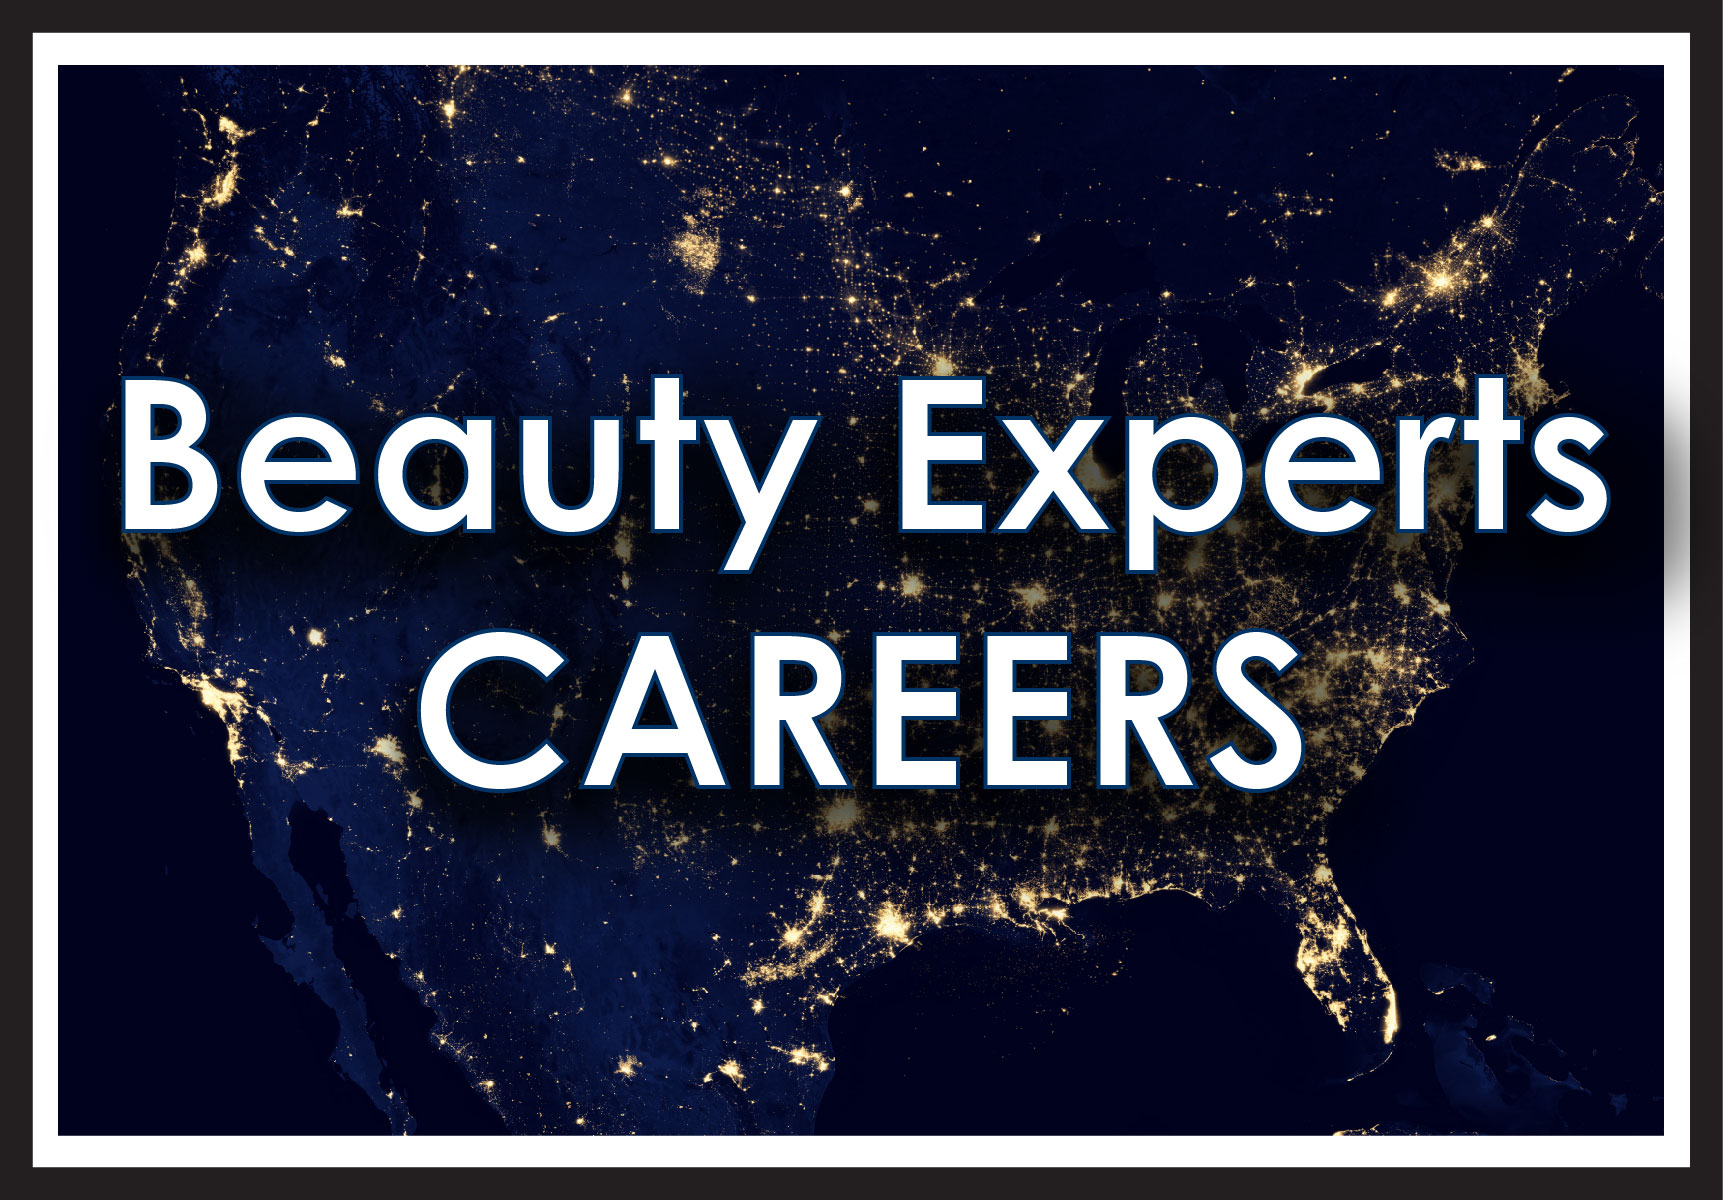 Beauty Experts Careers image